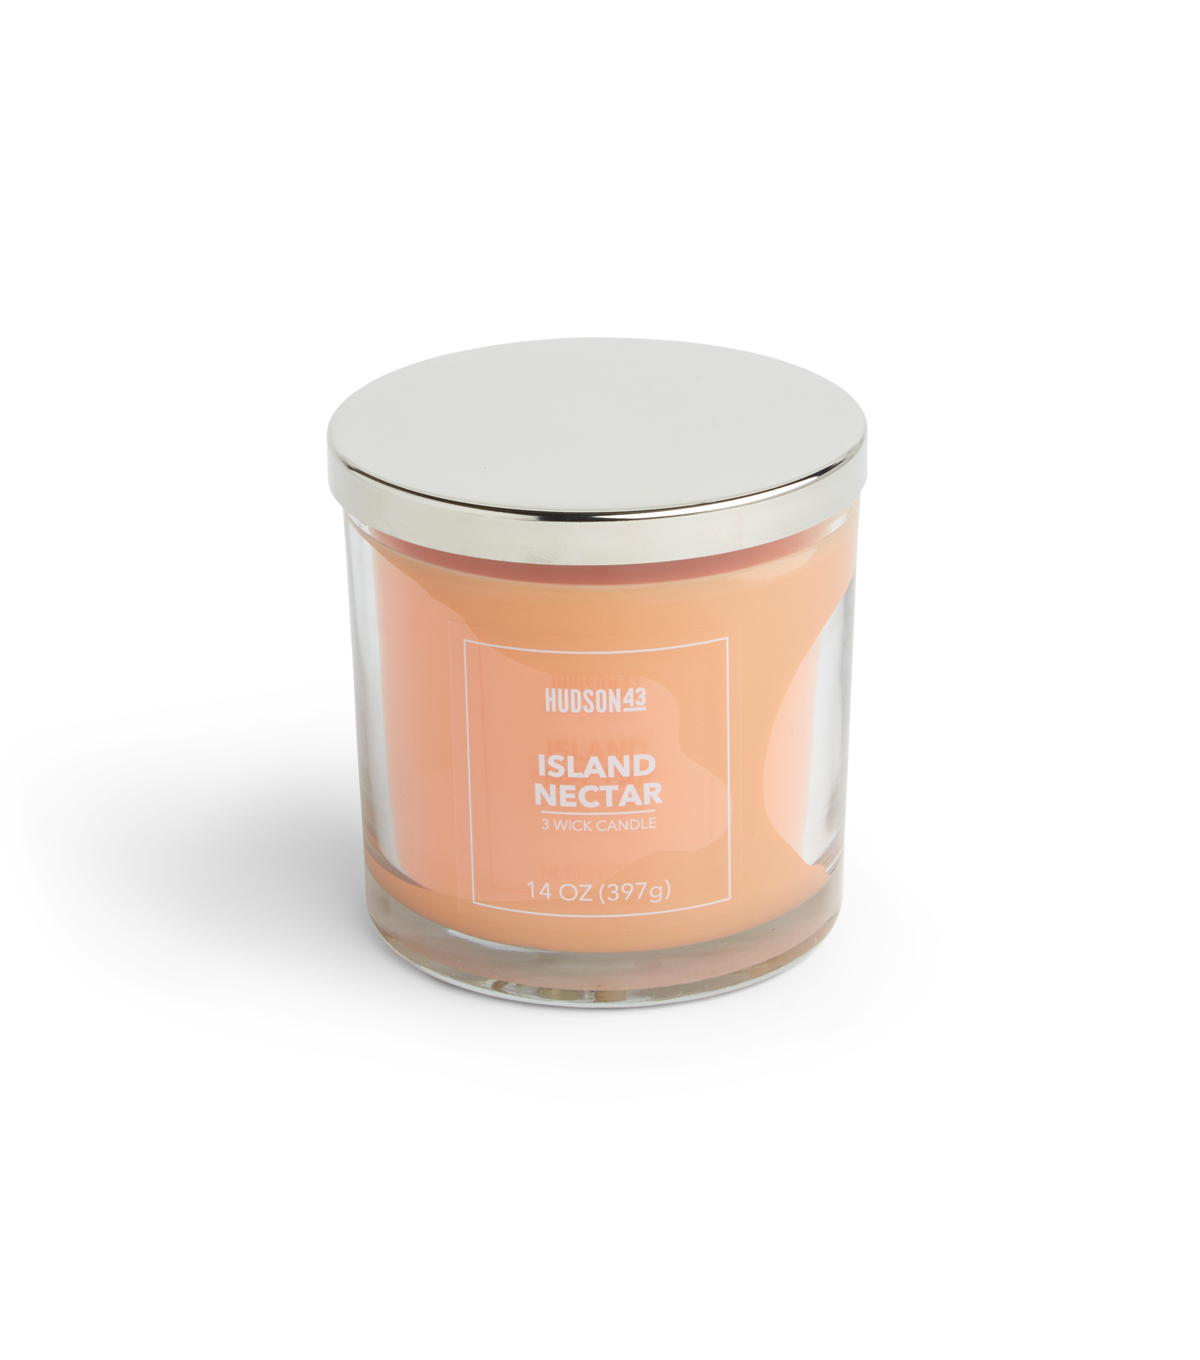 Hudson 43 Candle & Light 14 oz. Island Nectar Premium Scented Jar Candle